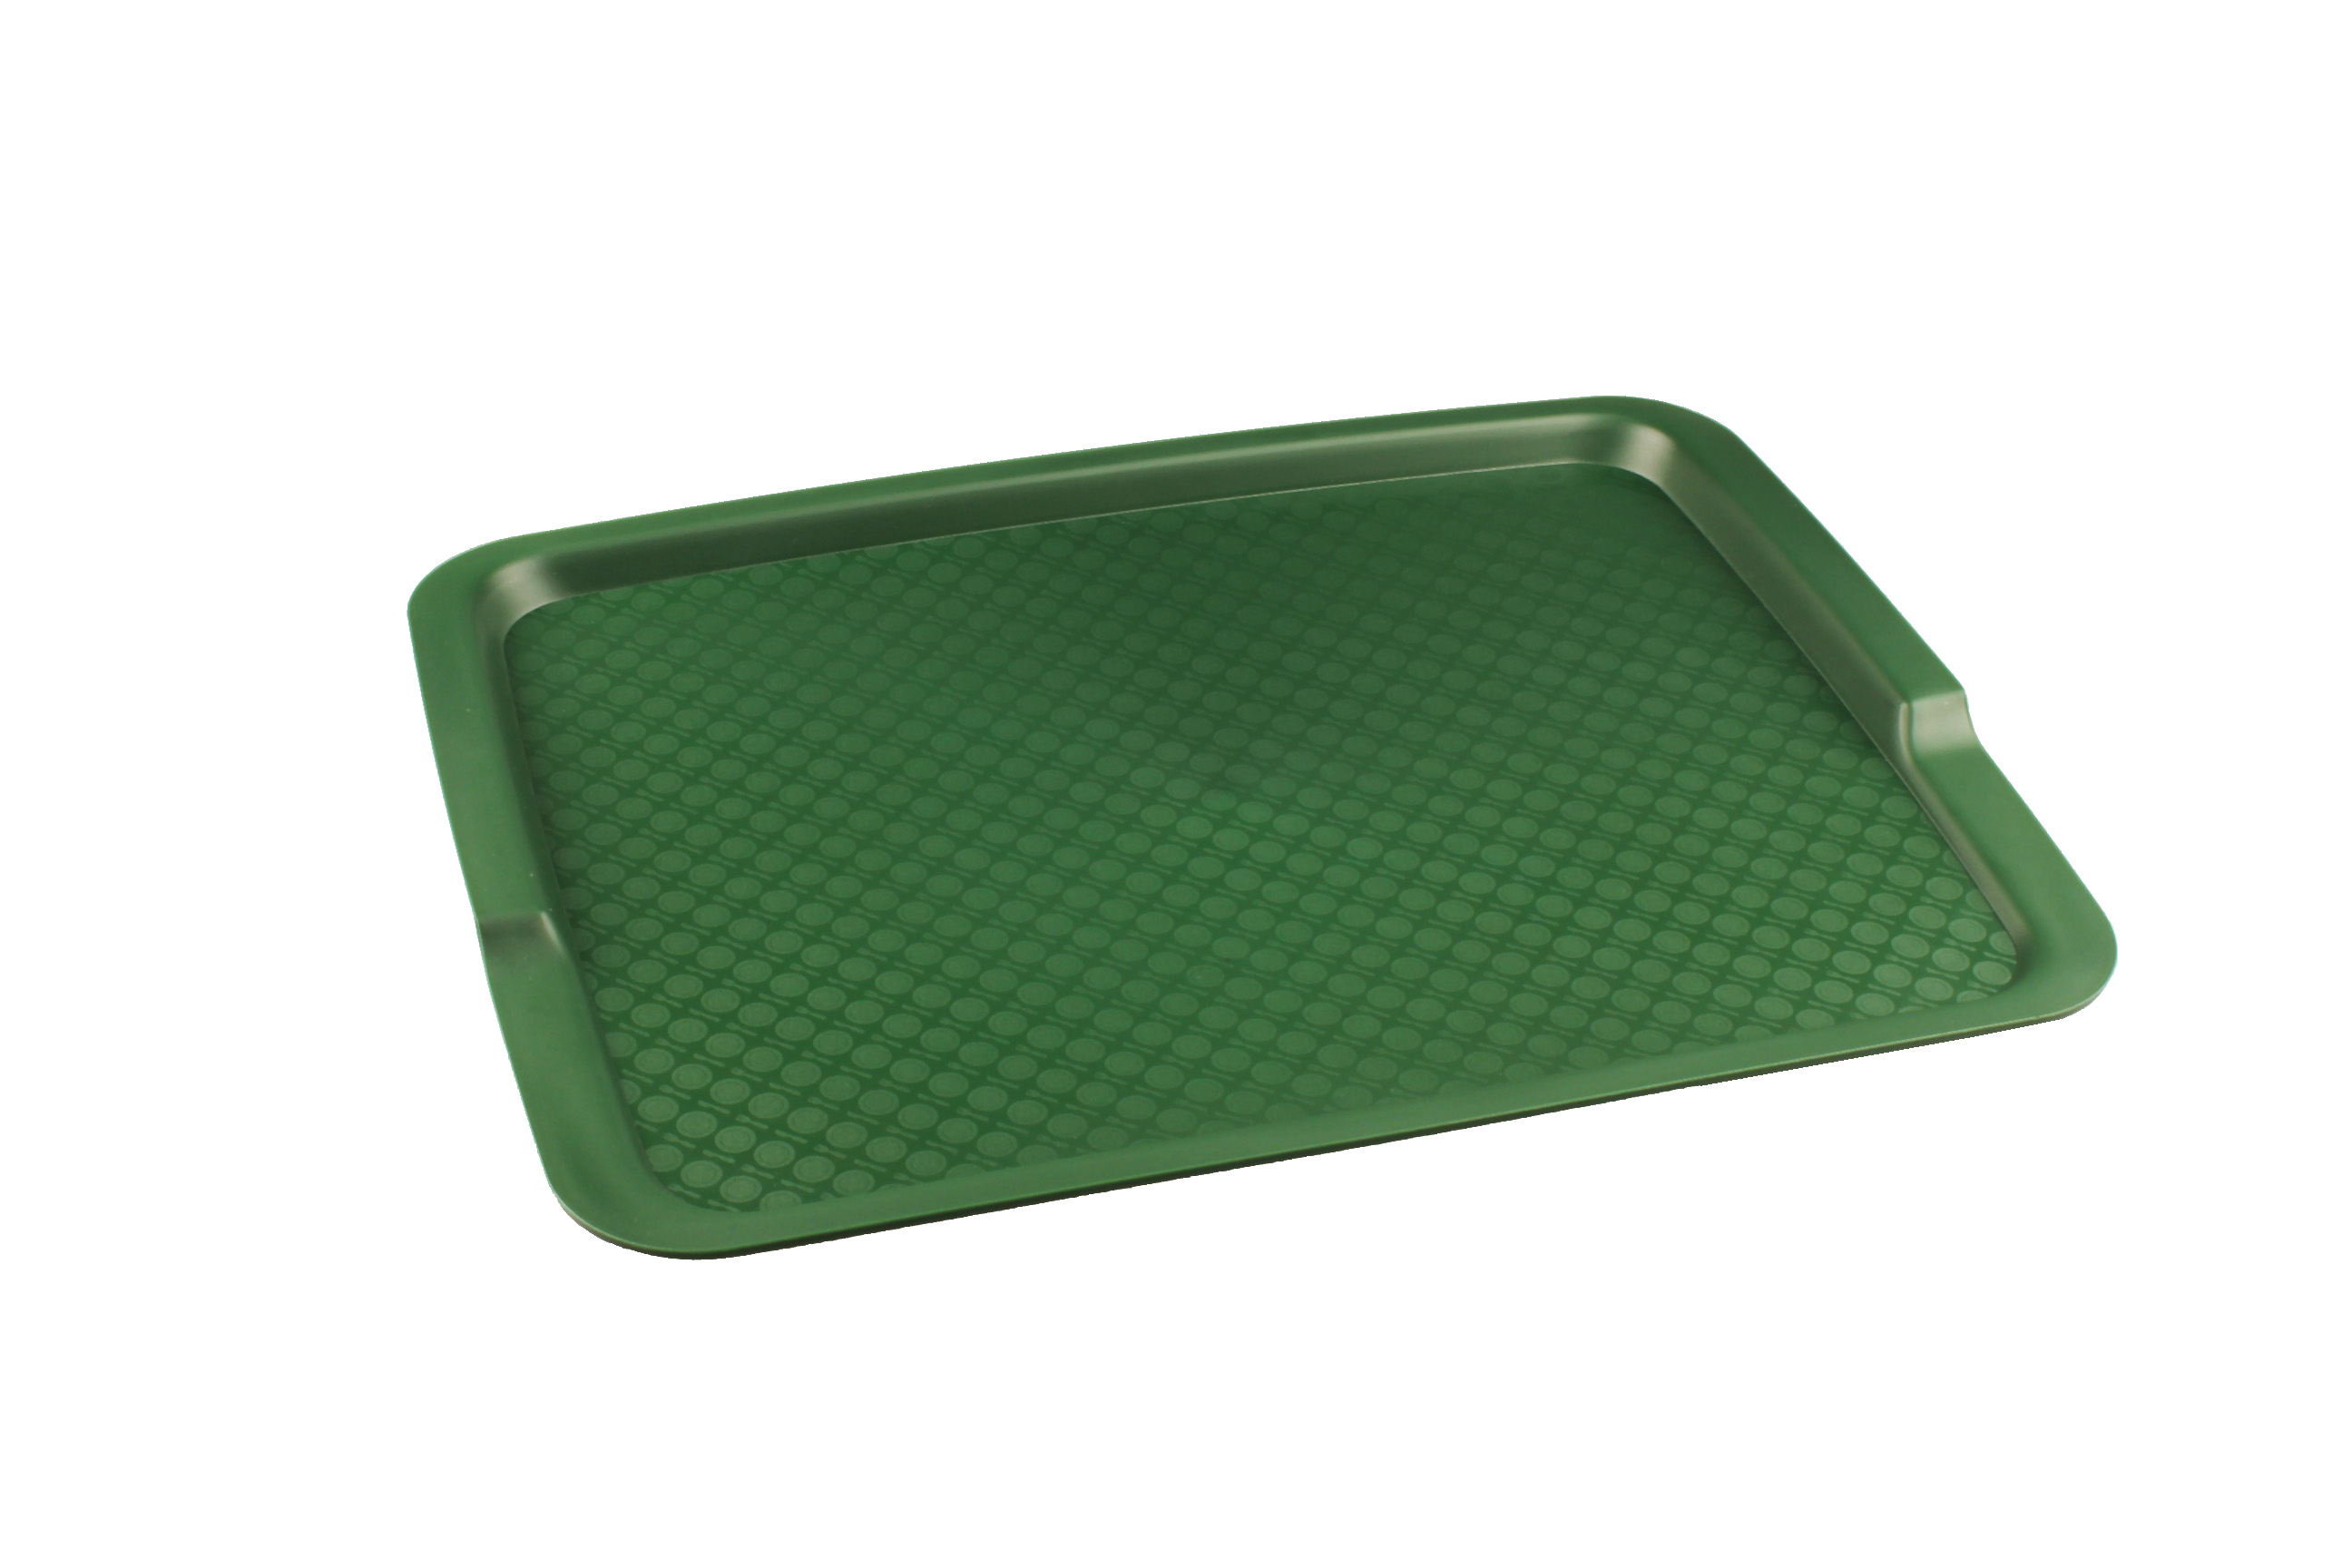 The tray for breakfast 425x320